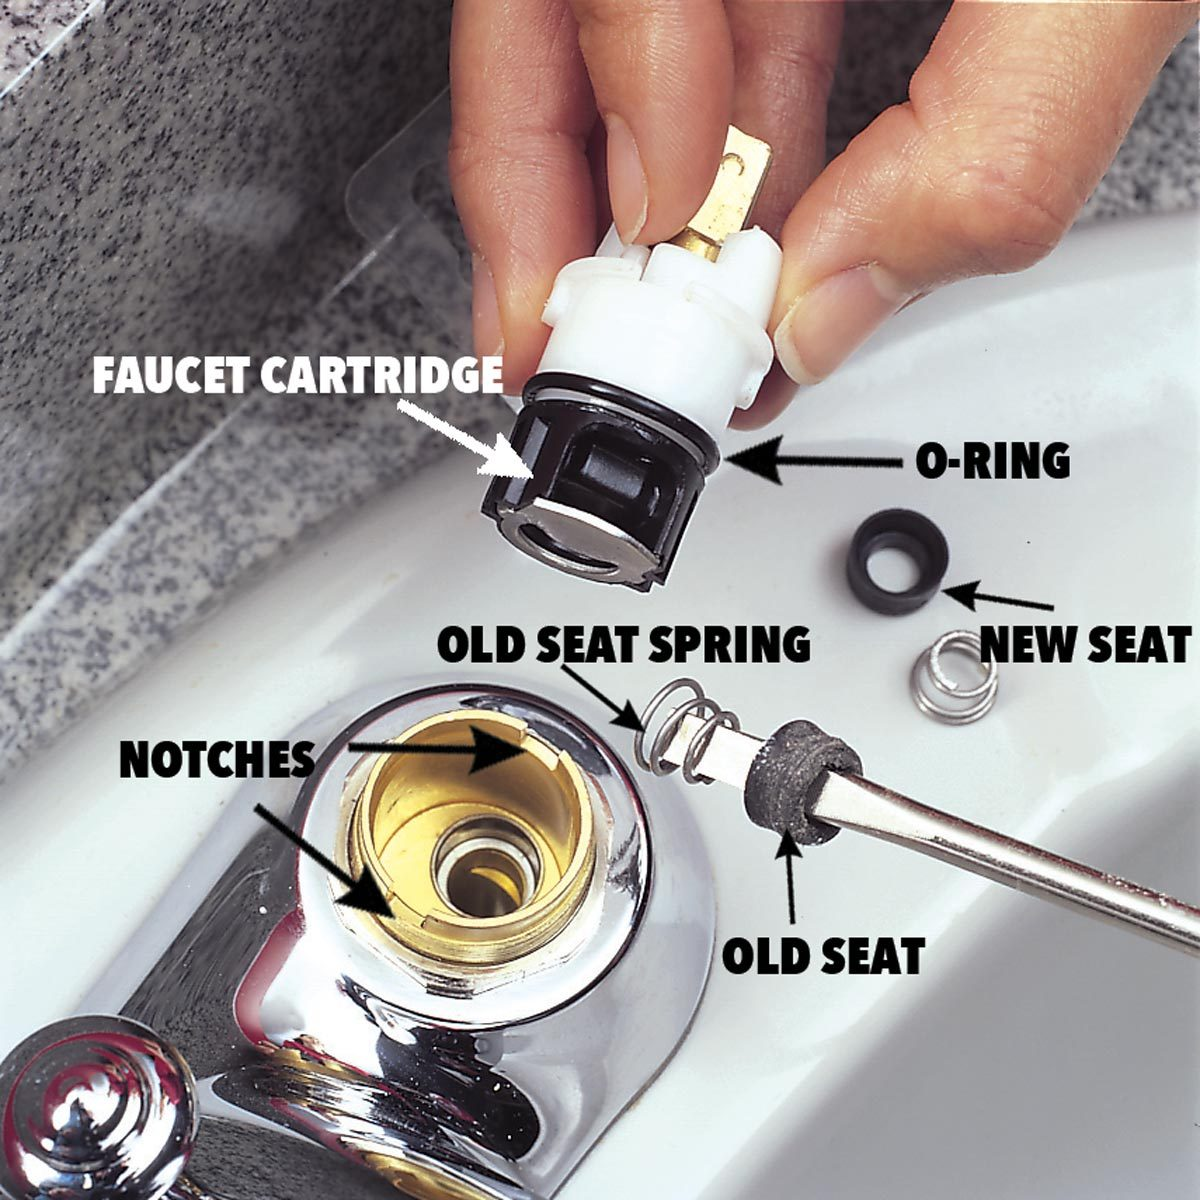 hight resolution of pull straight up on the faucet cartridge to remove it use pliers if you have to but be sure to protect the faucet cartridge with tape or a rag